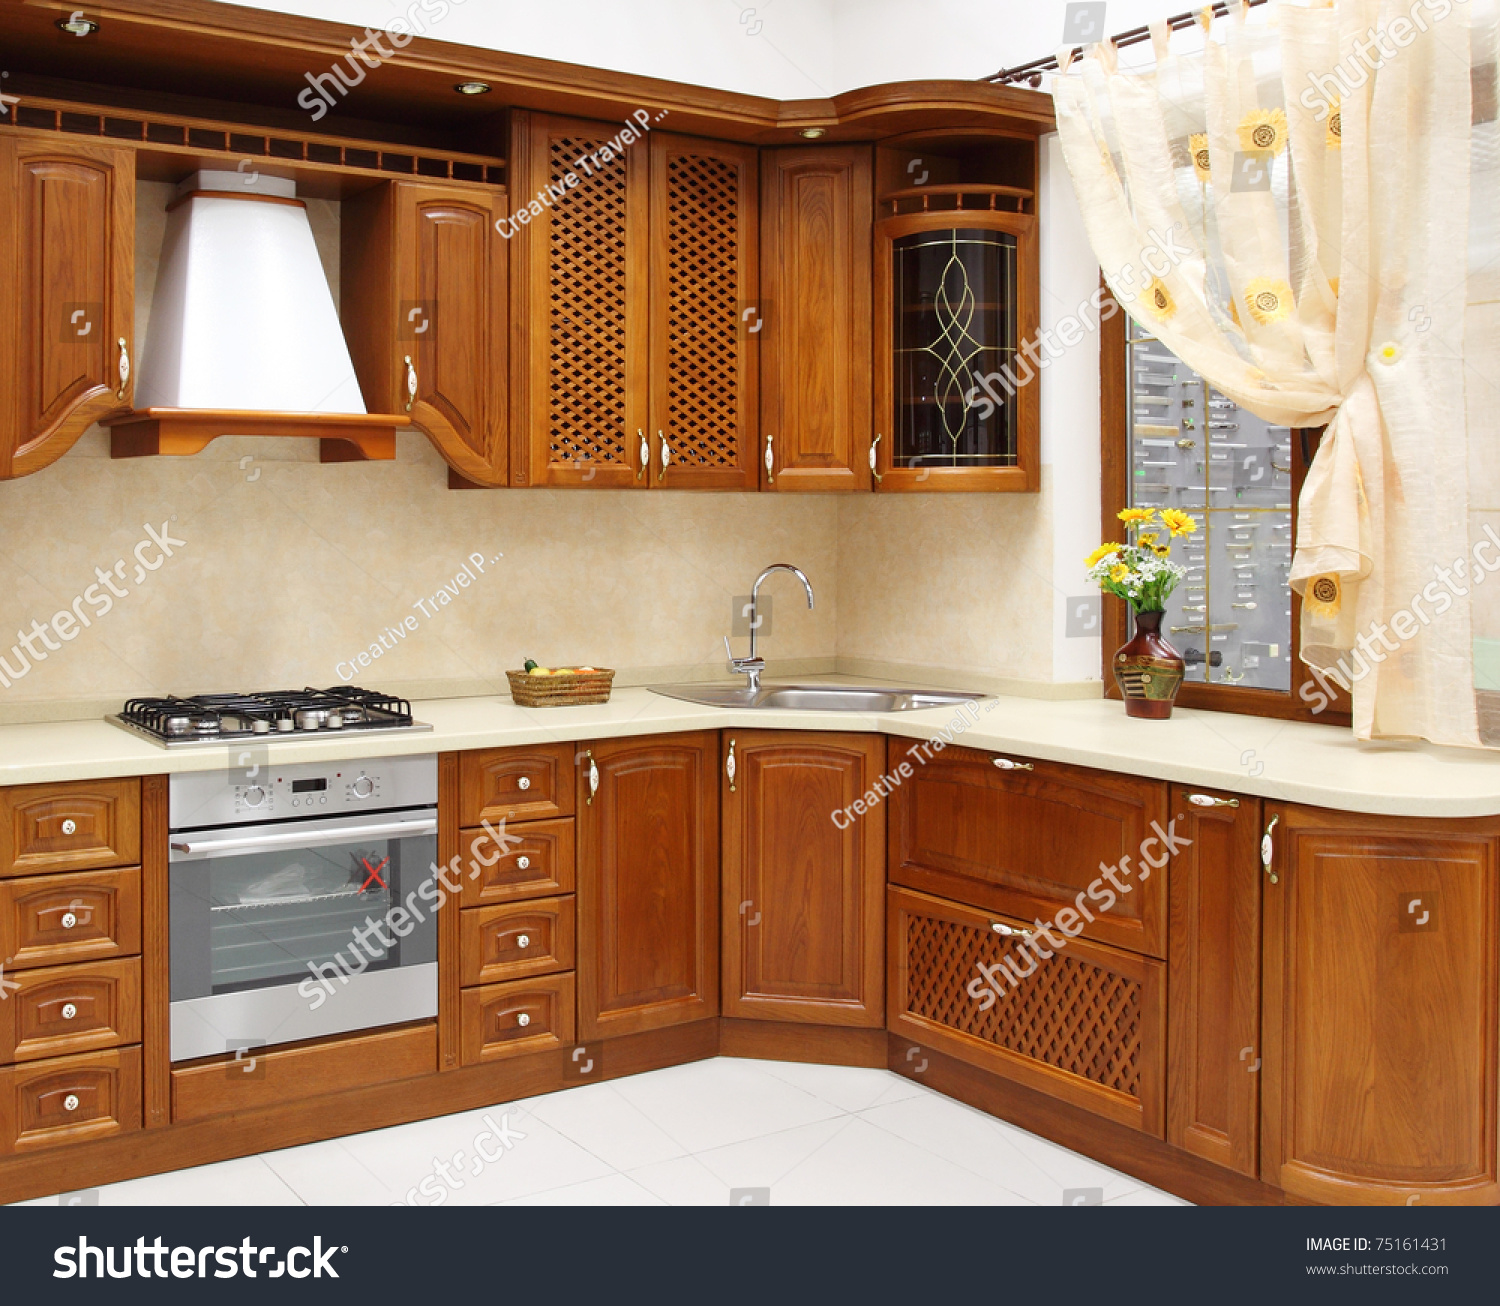 The New Kitchen Room, Modern Design Stock Photo 75161431